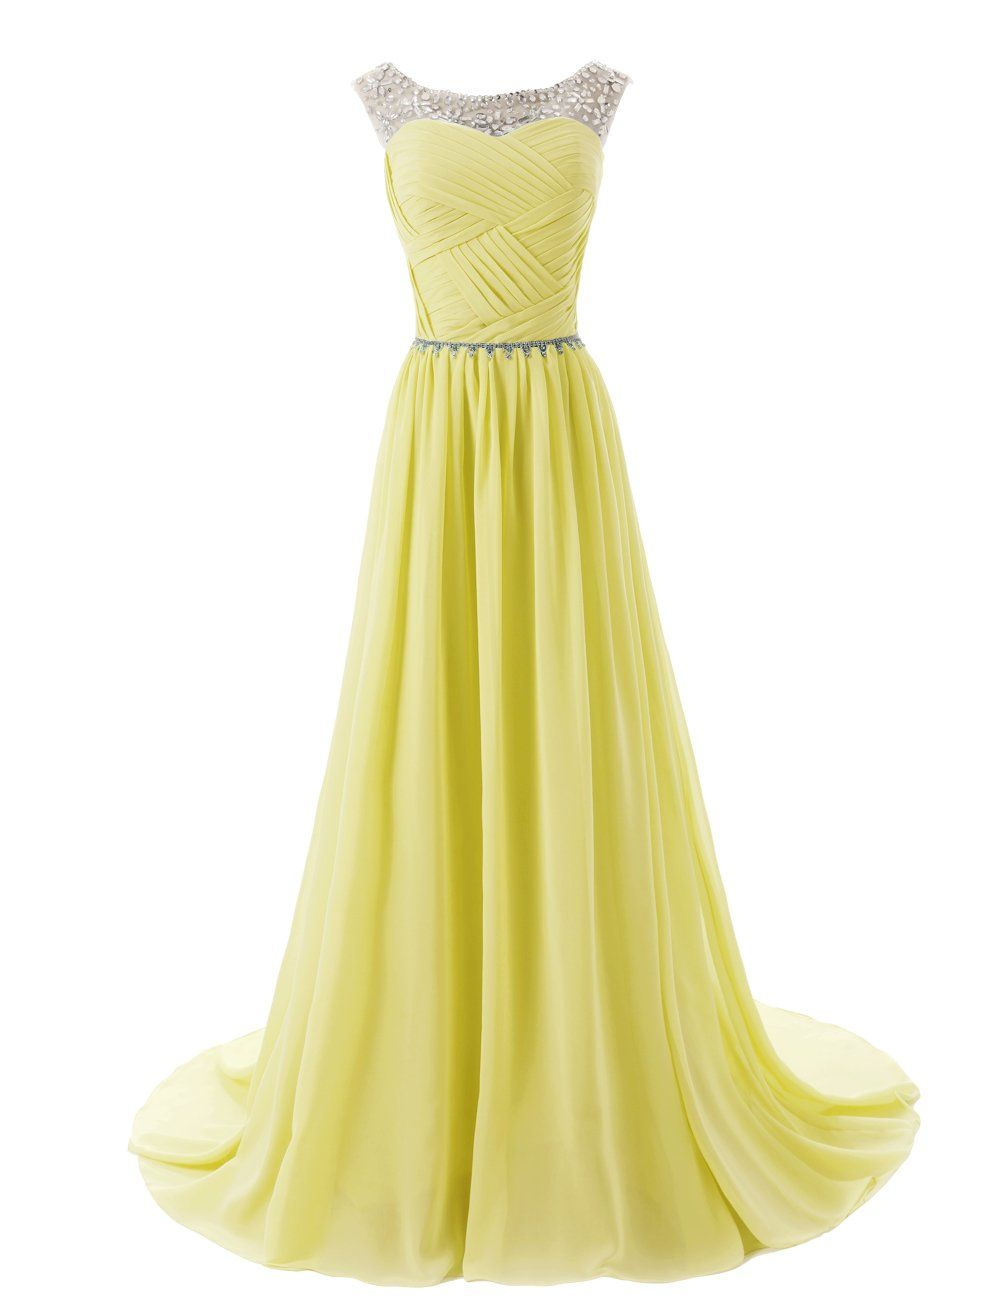 Dressystar beaded sleeveless bridesmaid dresses prom gown with beads